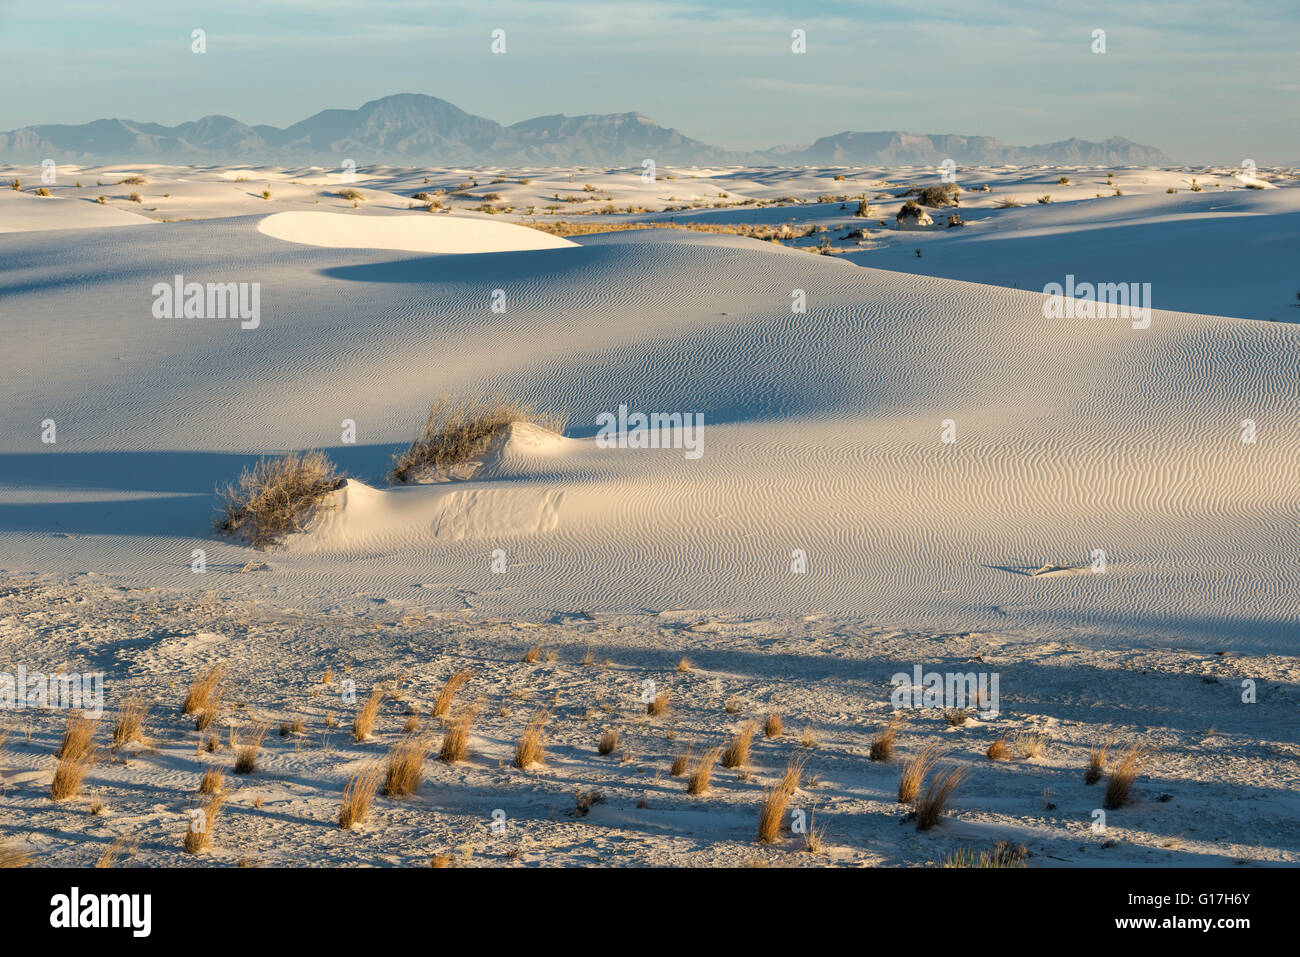 Sand dunes, White Sands National Monument, New Mexico. - Stock Image